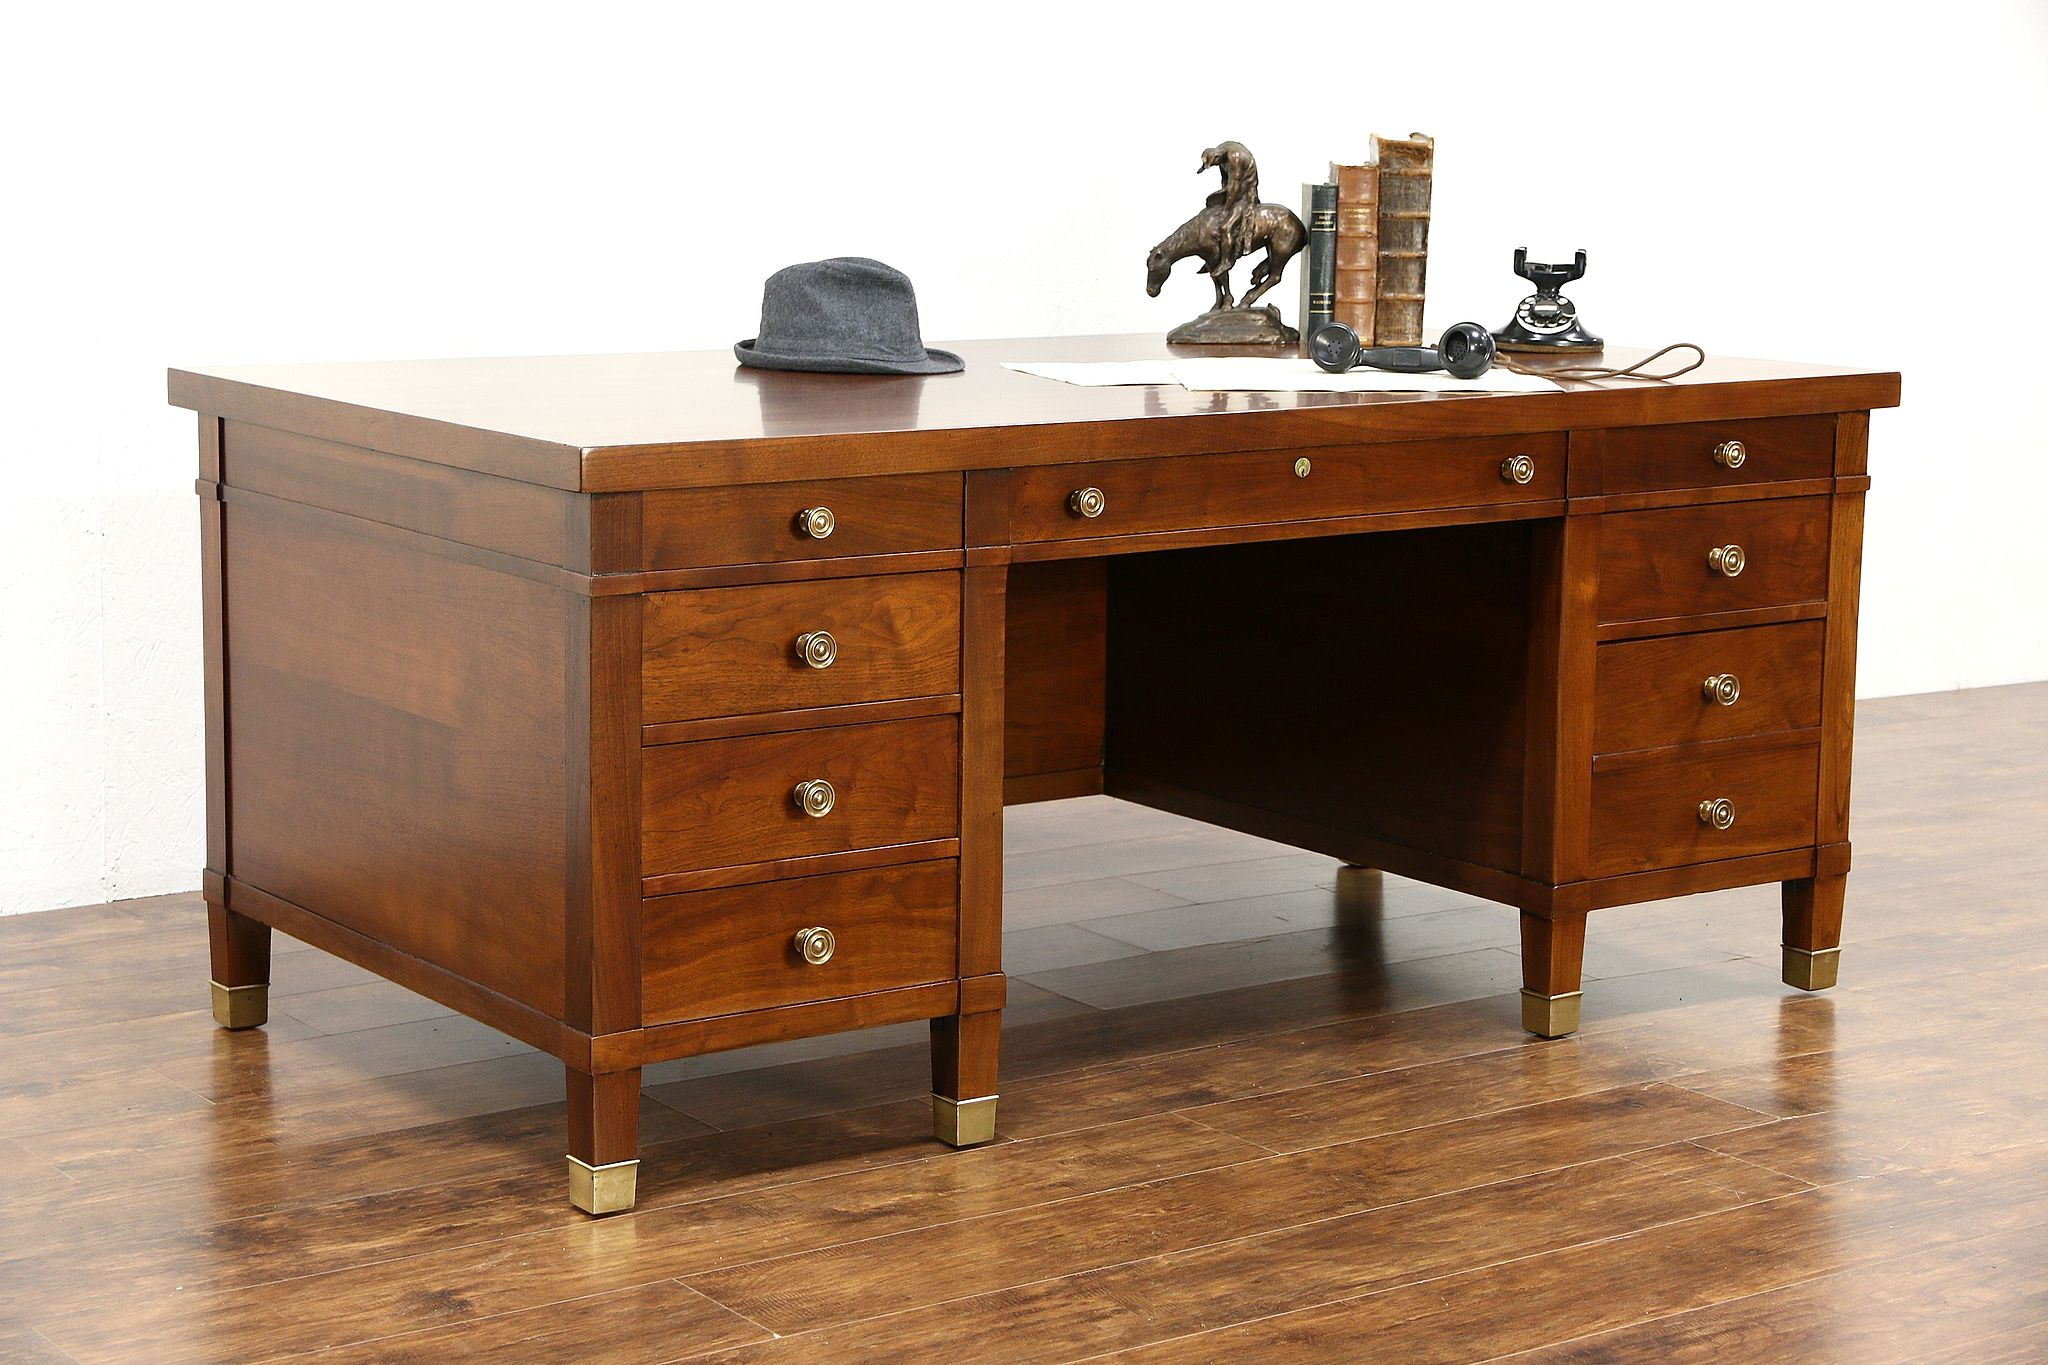 sold executive antique walnut 6 library or office desk bronze rh harpgallery com antique office desk and chair antique office desks for sale